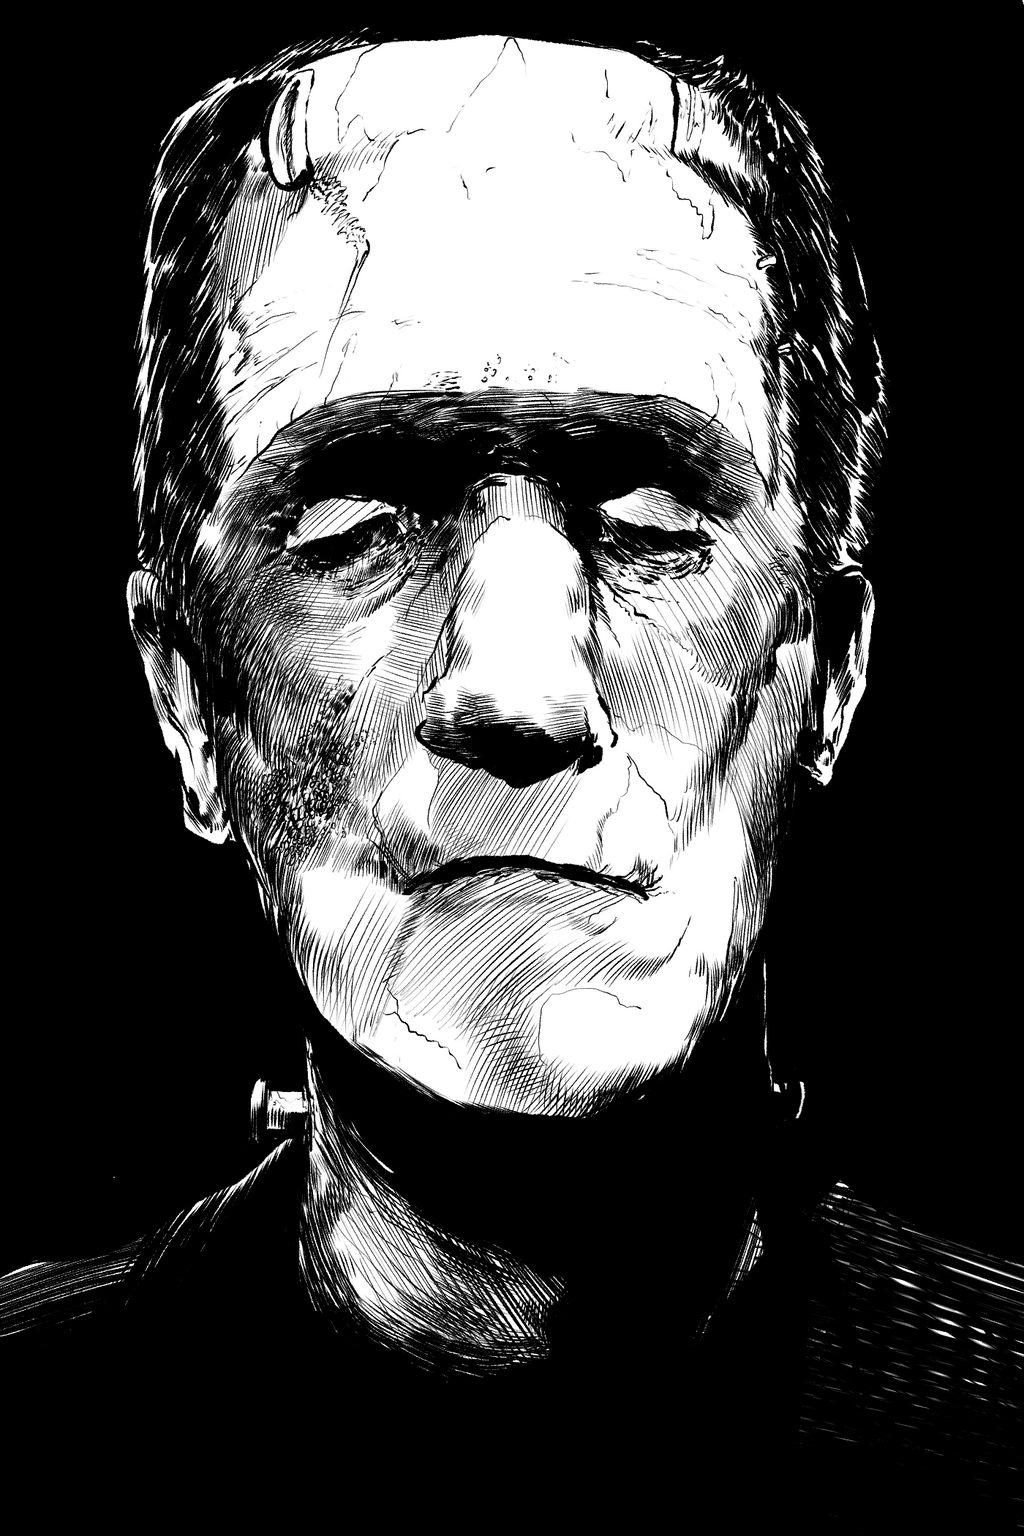 frankensteins ambition Free essay: blind ambition in mary shelley's frankenstein mary shelley, the renowned author of frankenstein, explores the consequences of man and monster.